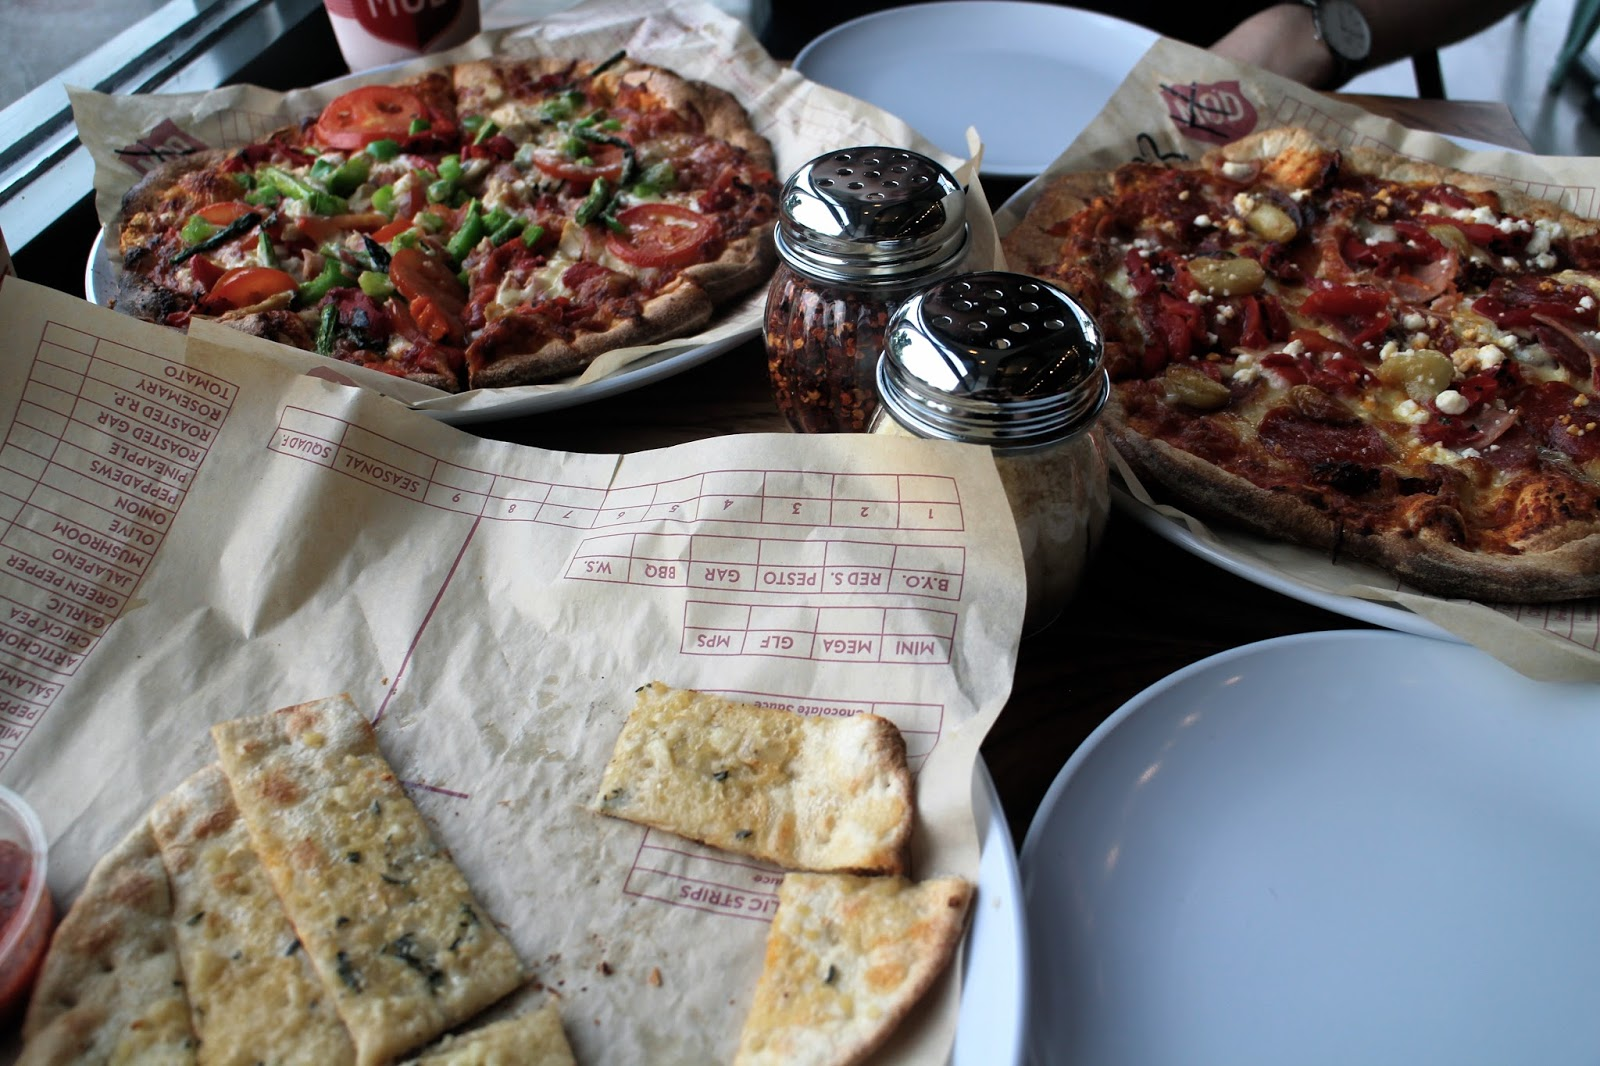 Pizza and garlic bread at MOD Pizza Leeds